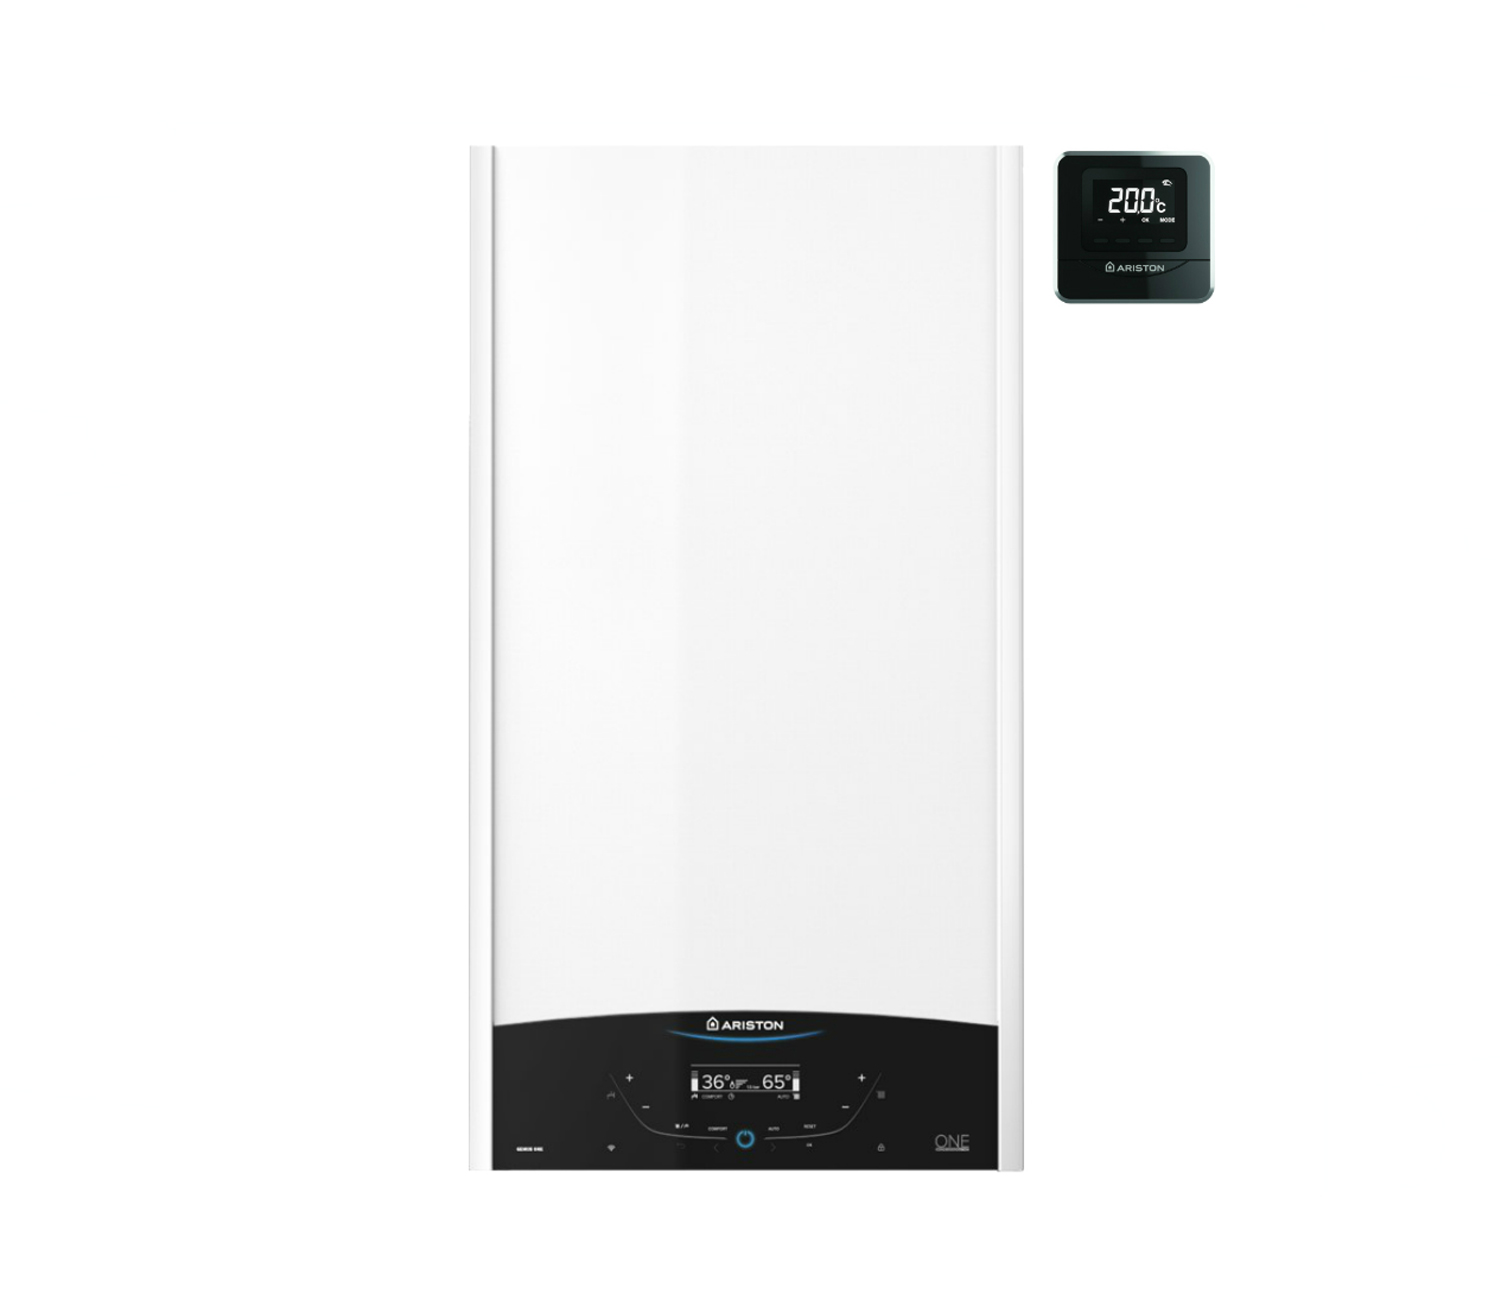 ARISTON Boiler Genus One Net 24